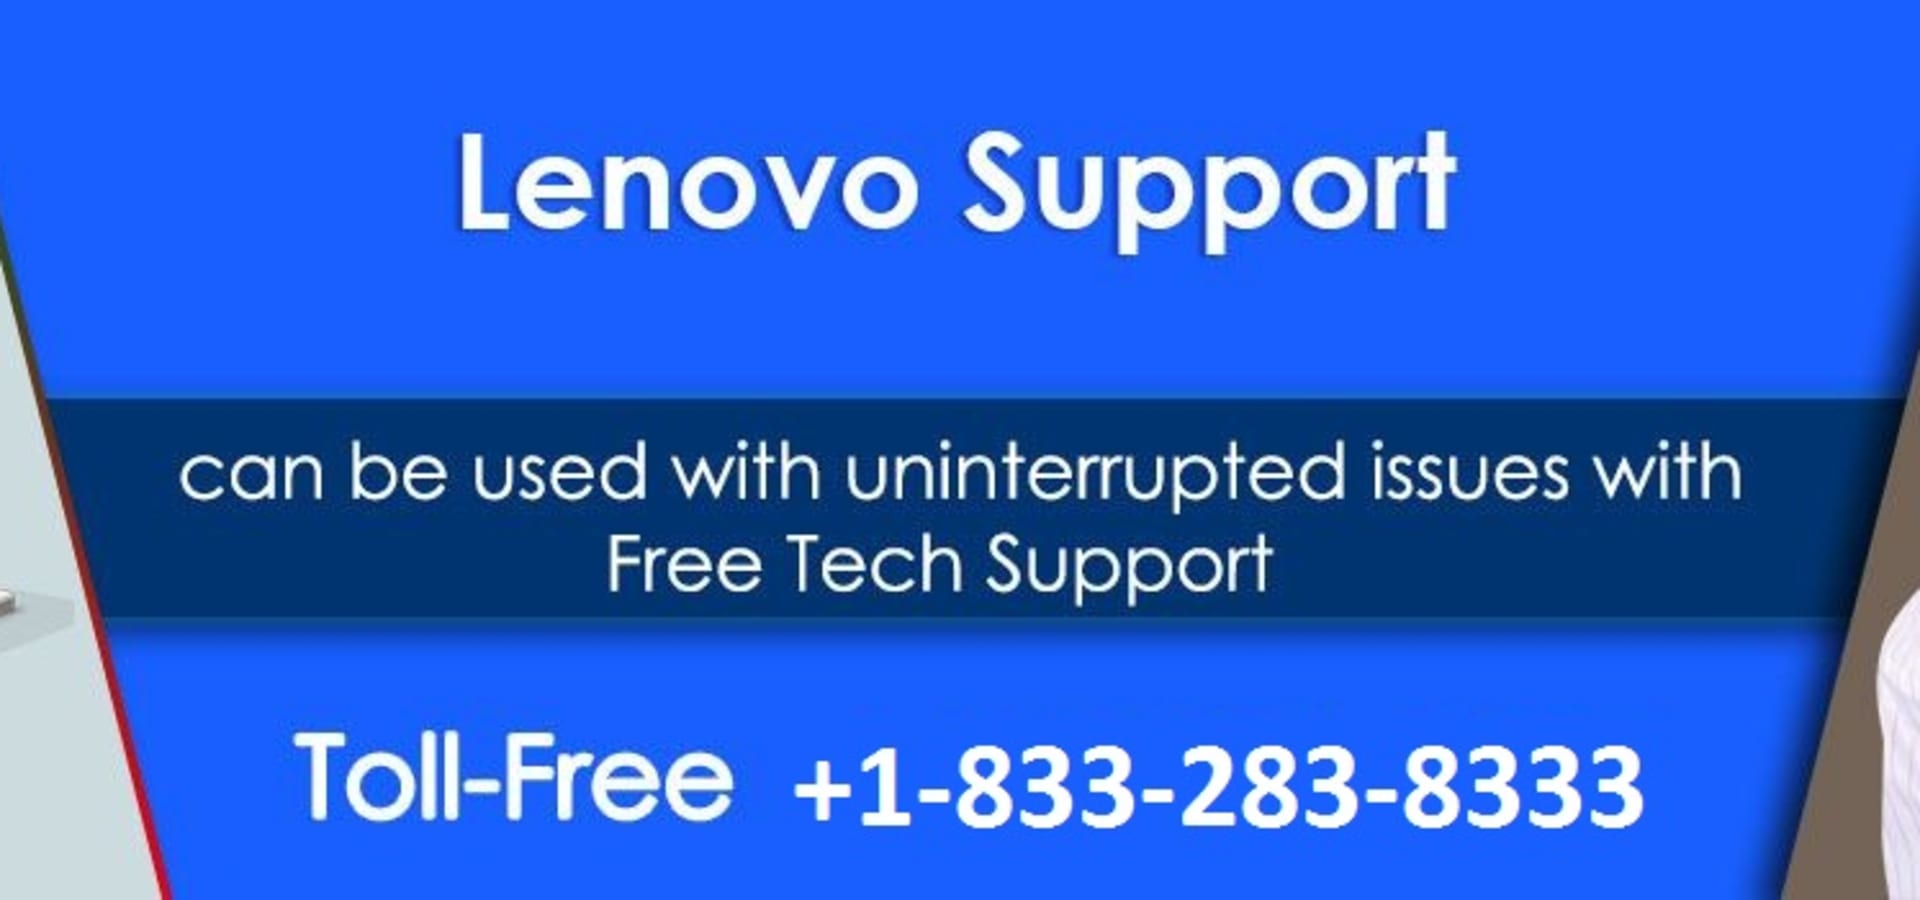 Support Number